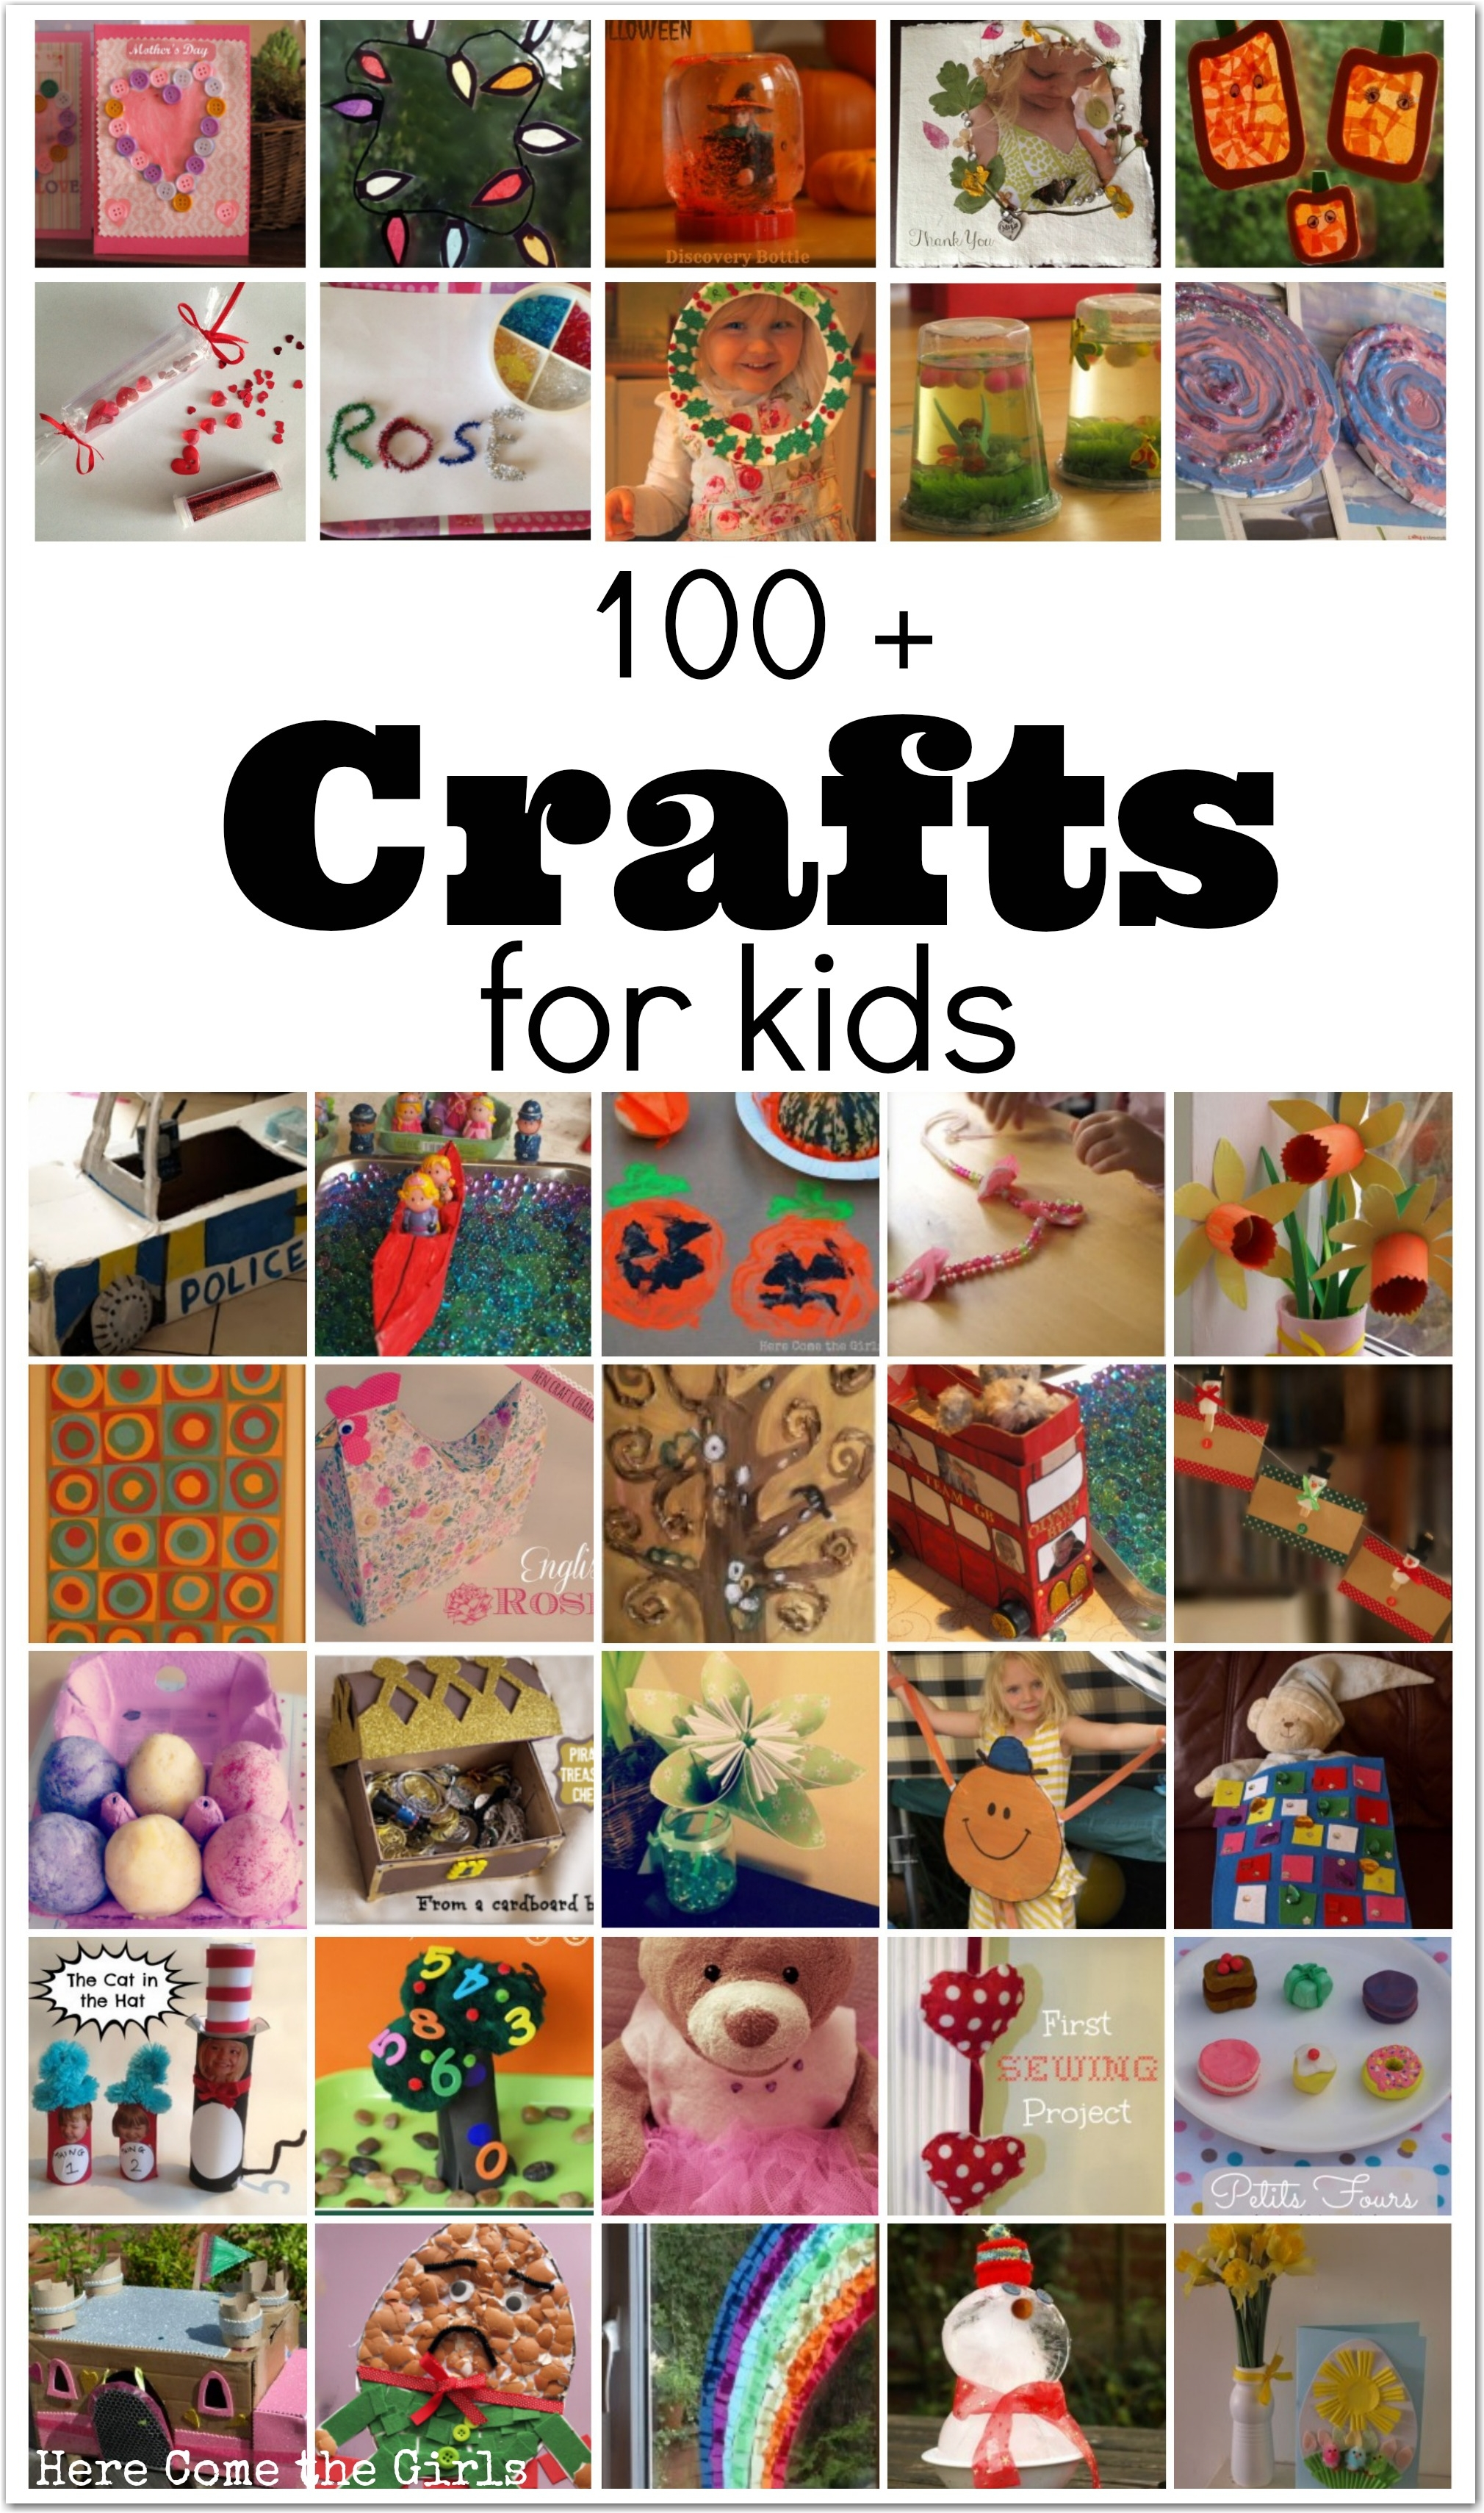 100+ Crafts For Kids - Here Come the Girls